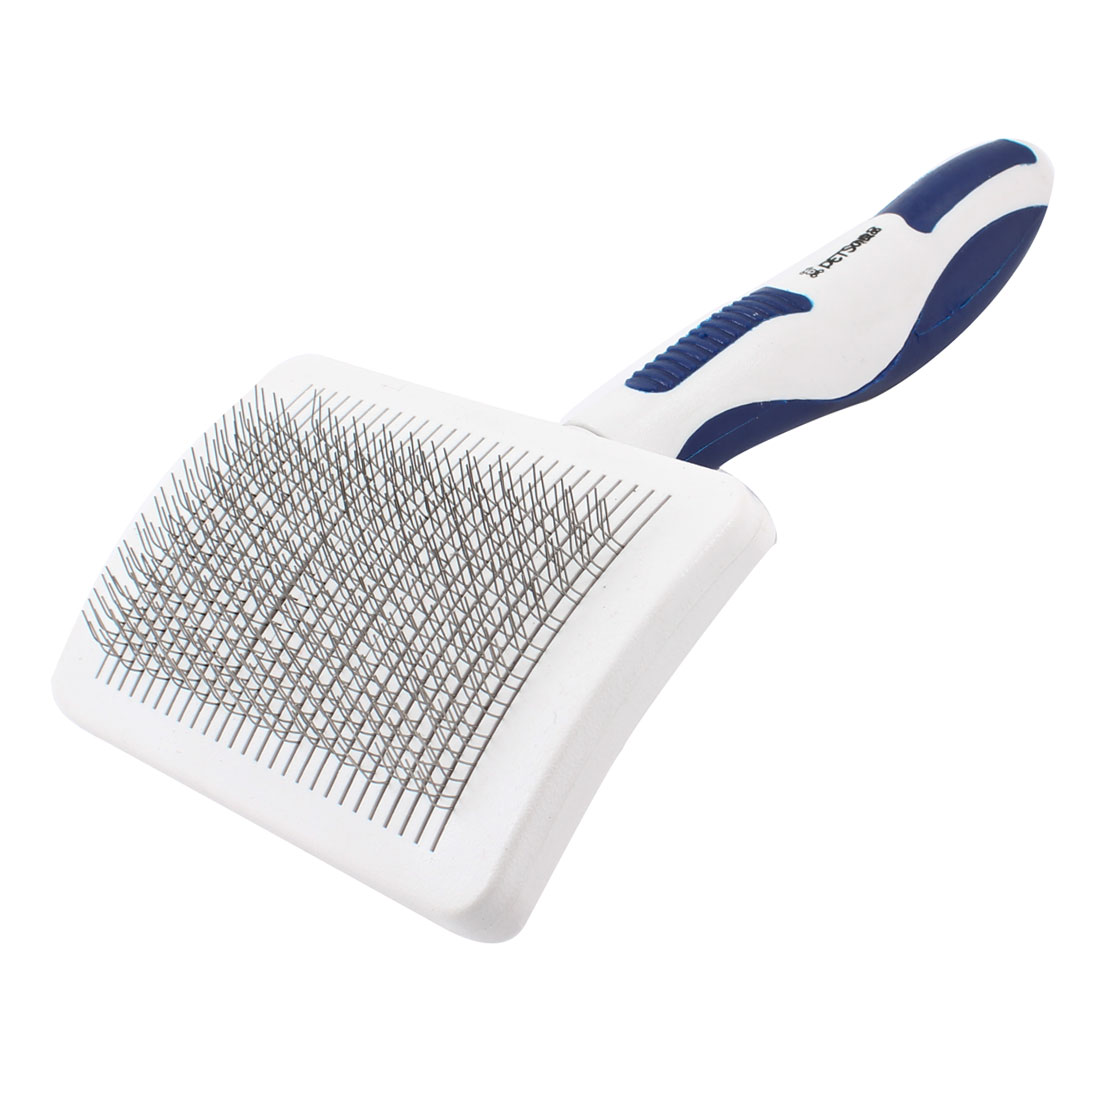 "White Blue Handle Metal Wire Dog Cat Hair Brush Comb Grooming Tool 8.3"" Long"